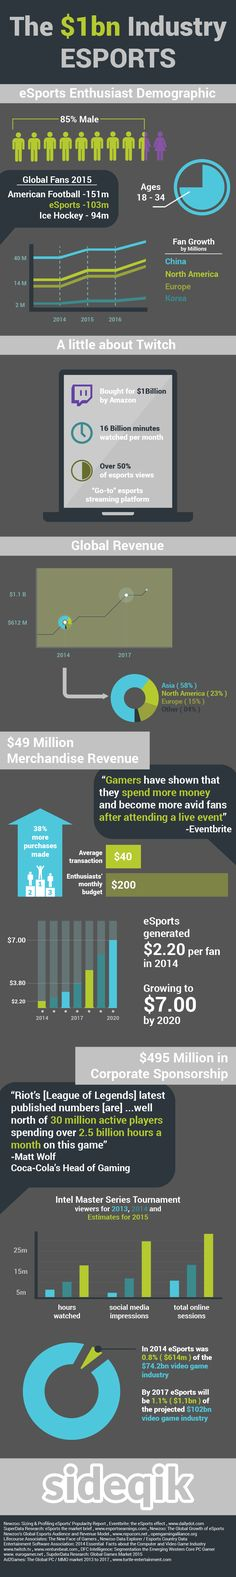 (Infographic) eSports is The new multi-billion dollar industry! Need to repin to save for when I need a reason to keep gaming.